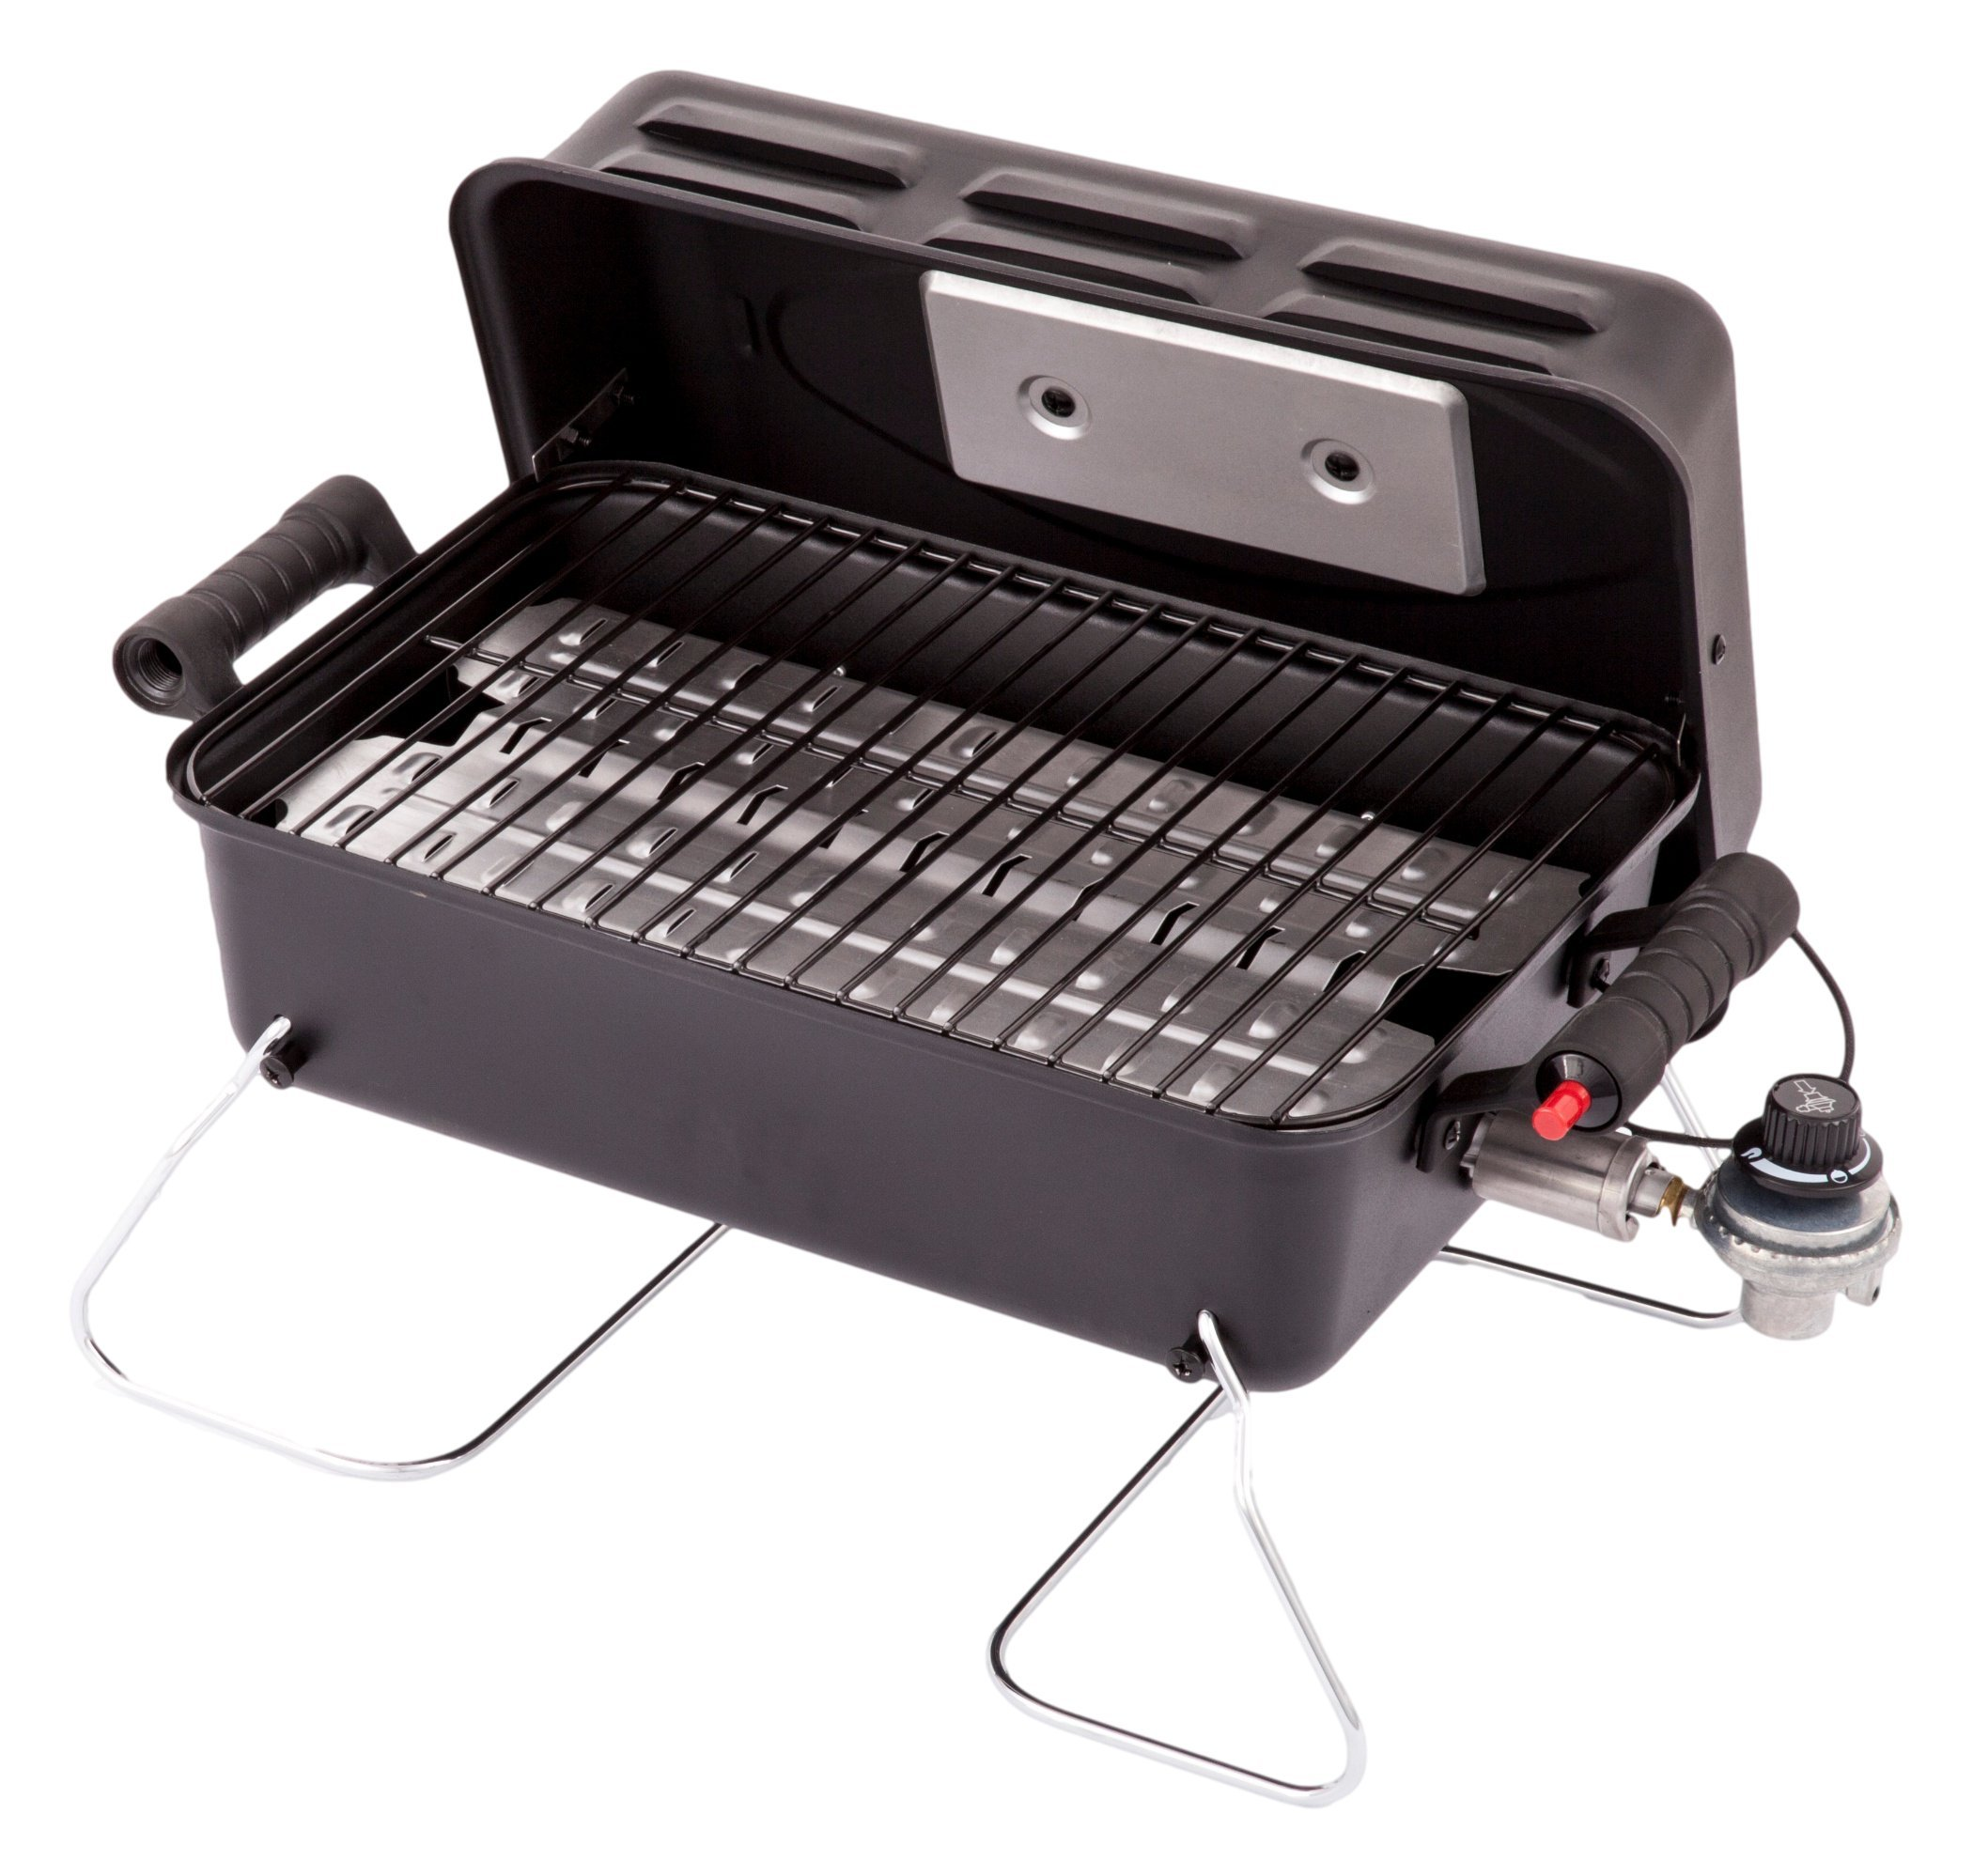 Char-Broil Deluxe Portable Liquid Propane Gas Grill by Char-Broil